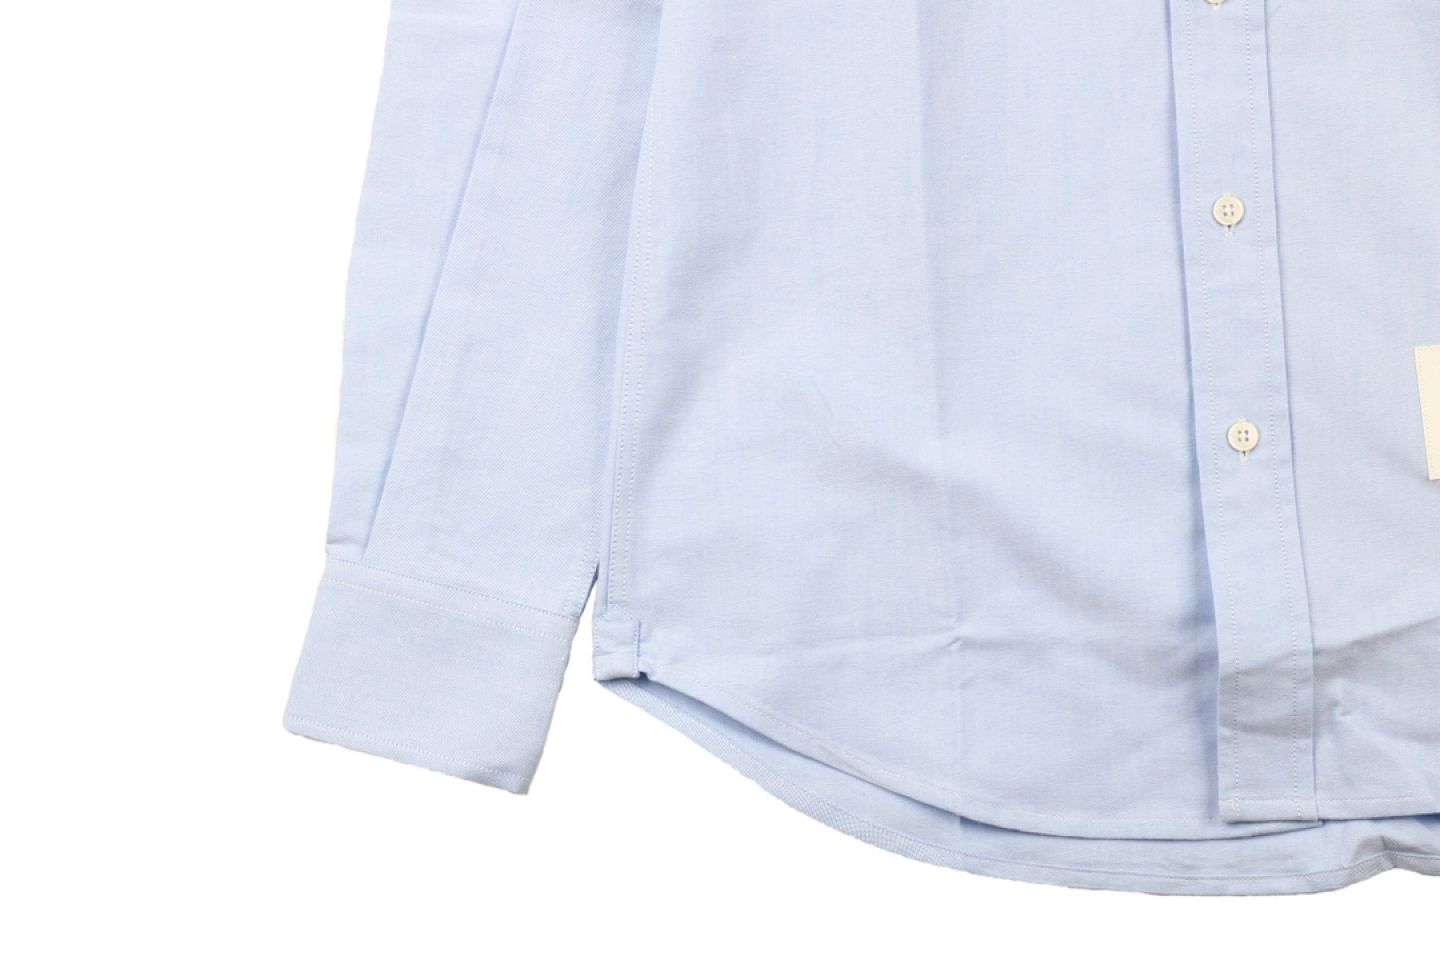 "Shirt Thom Browne 20ss arm web shirt ""Light Blue"" 4 4"